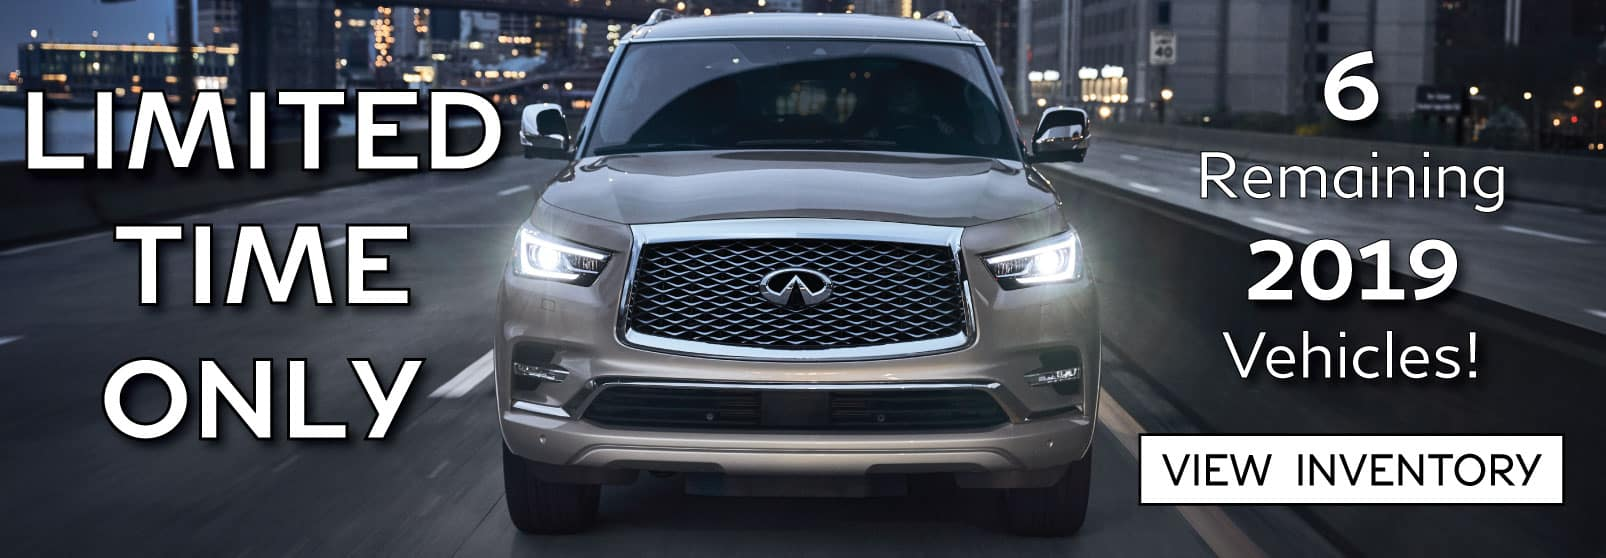 Limited Time Offer for 6 2019 vehicles remaining! Image is of a 2020 QX80 on the road.